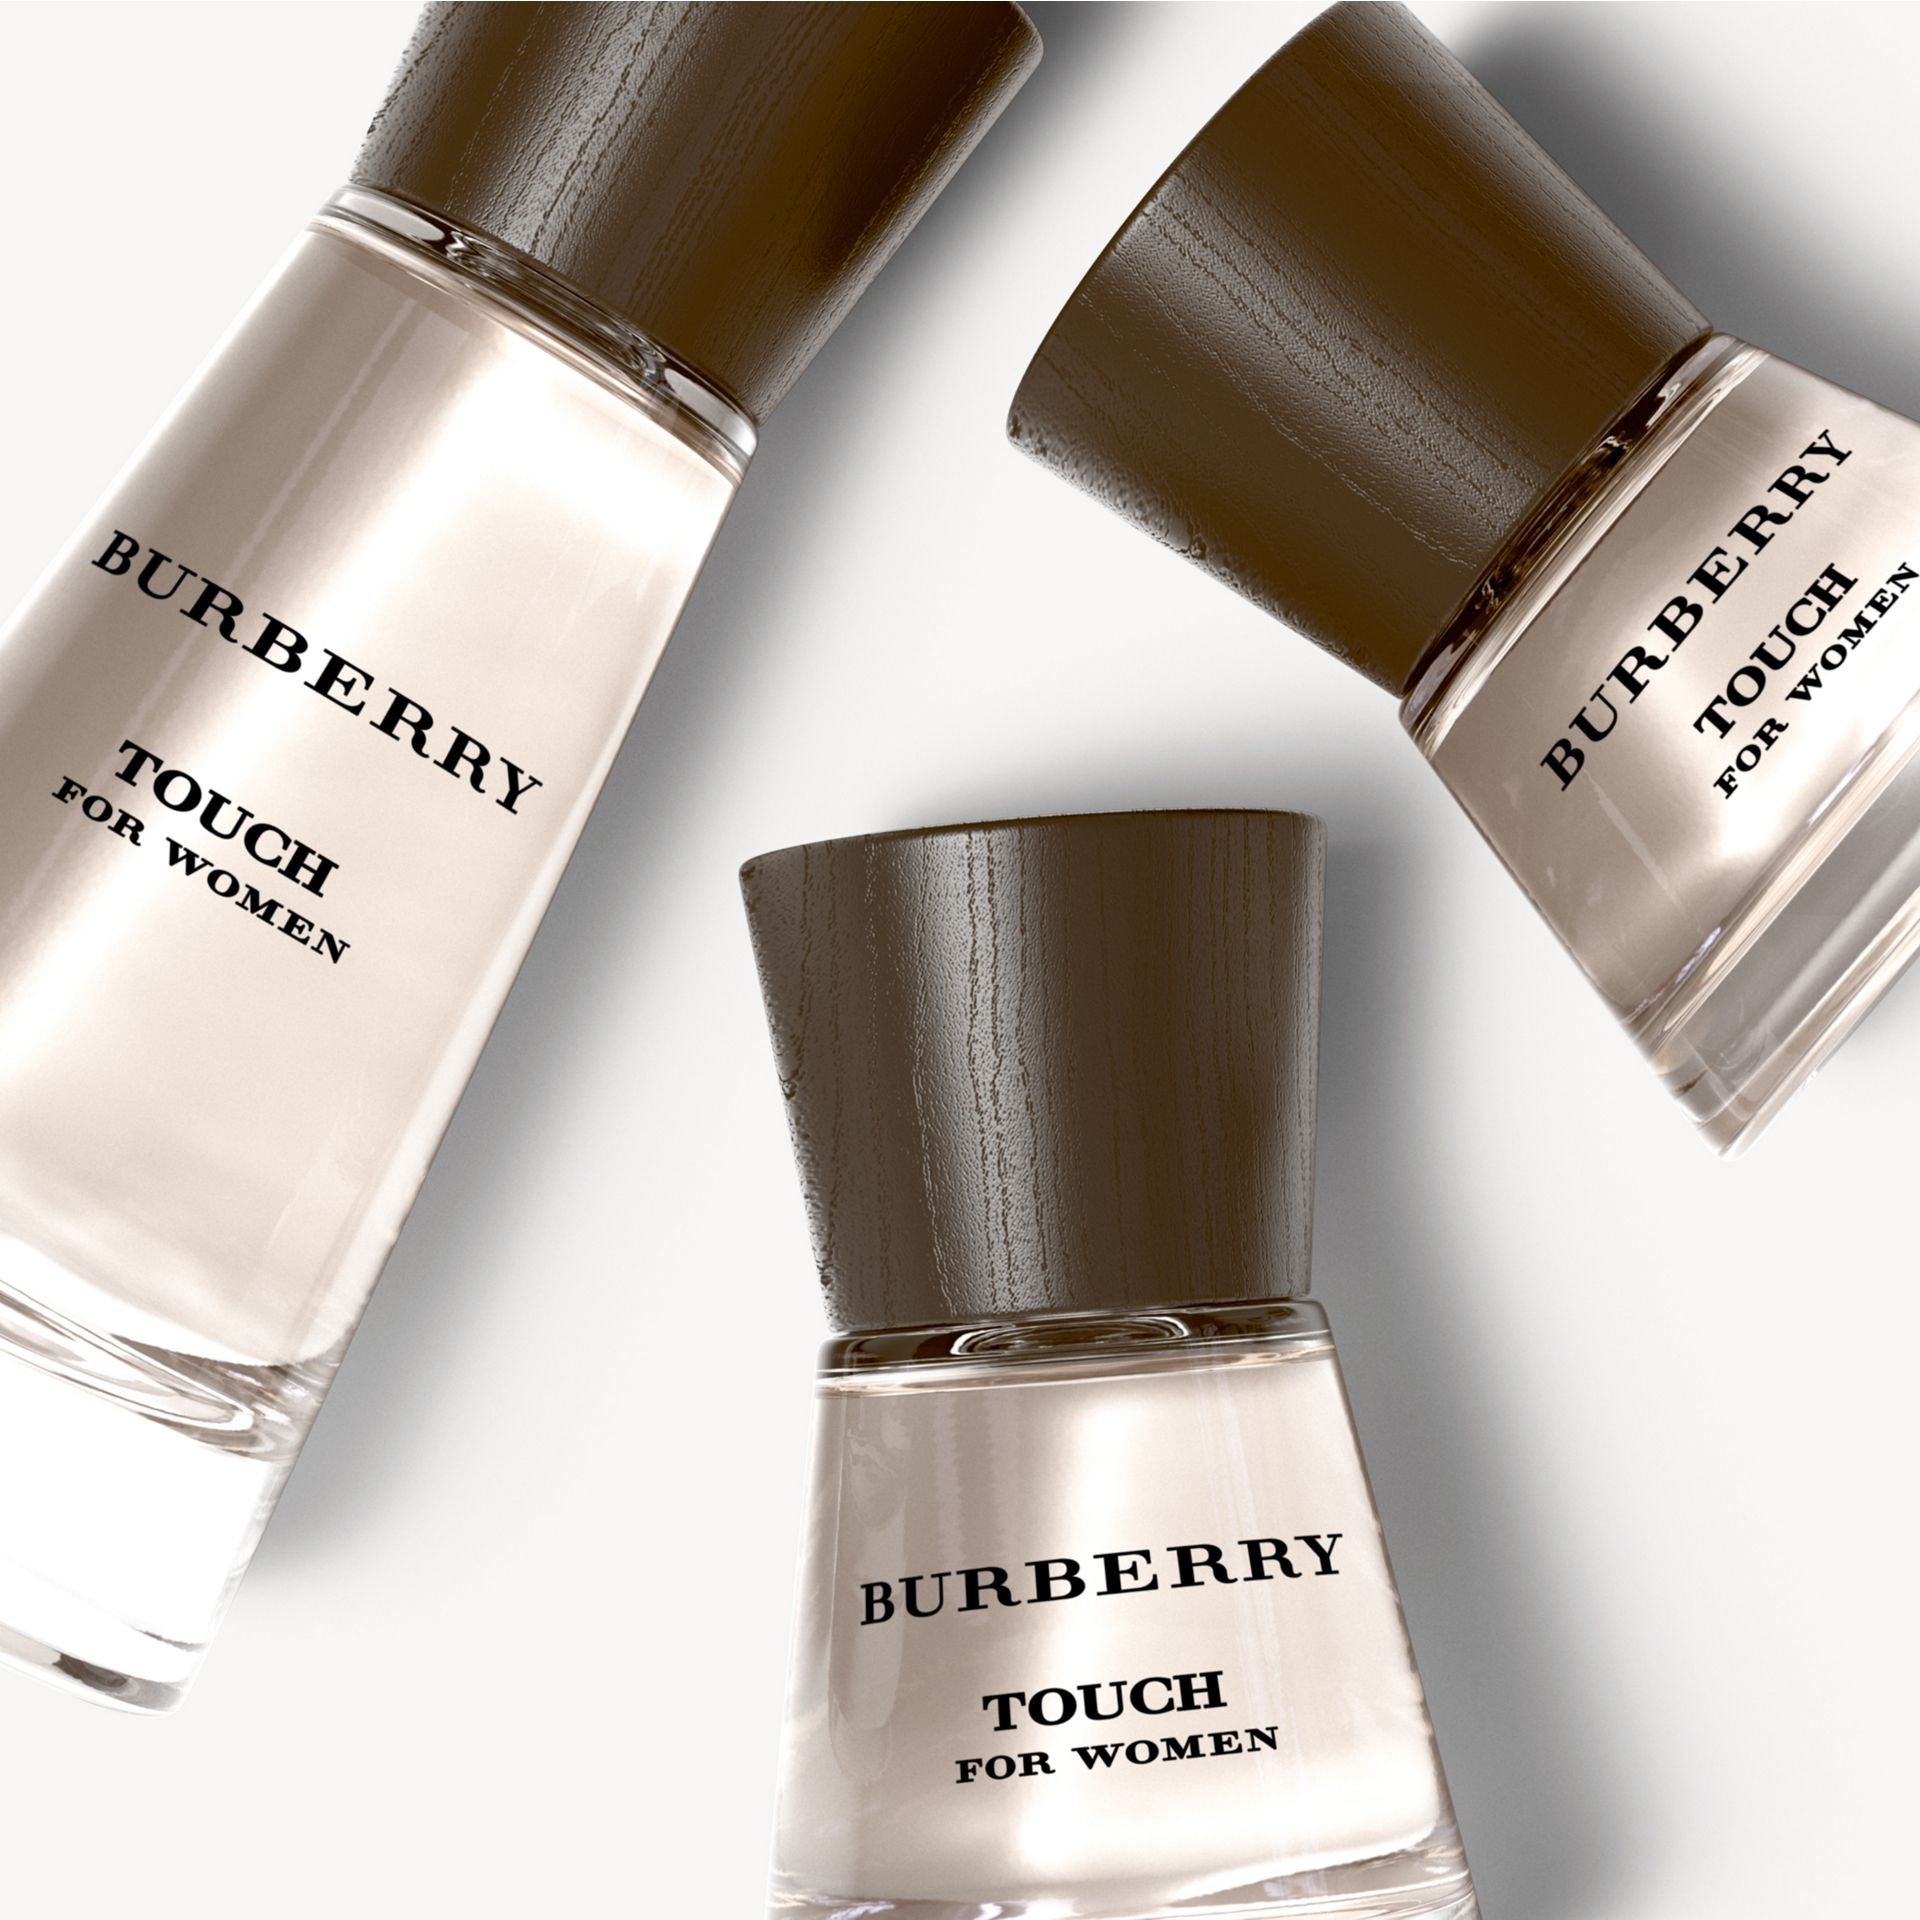 Burberry Touch Eau de Parfum 50ml - gallery image 2